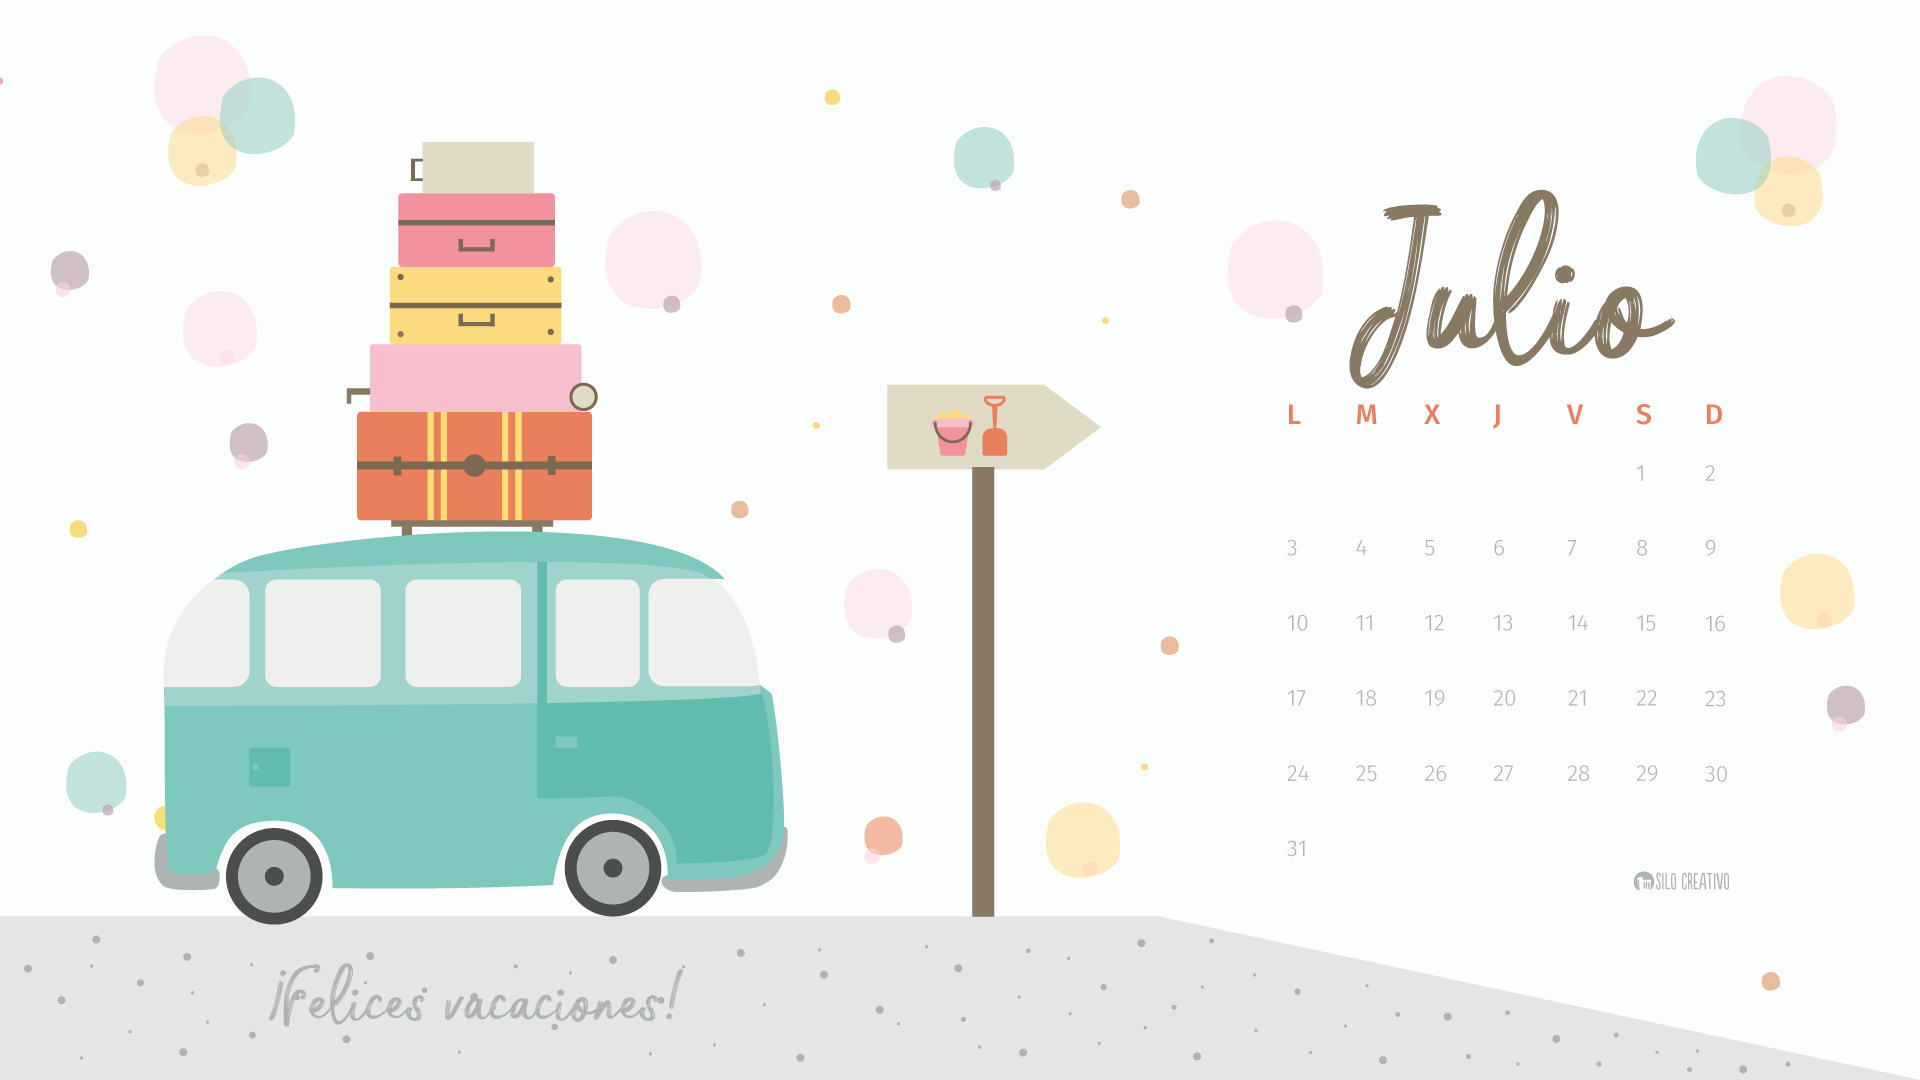 Mes De Julio 2017 Calendario Descargable Julio 2017 Silo Creativo